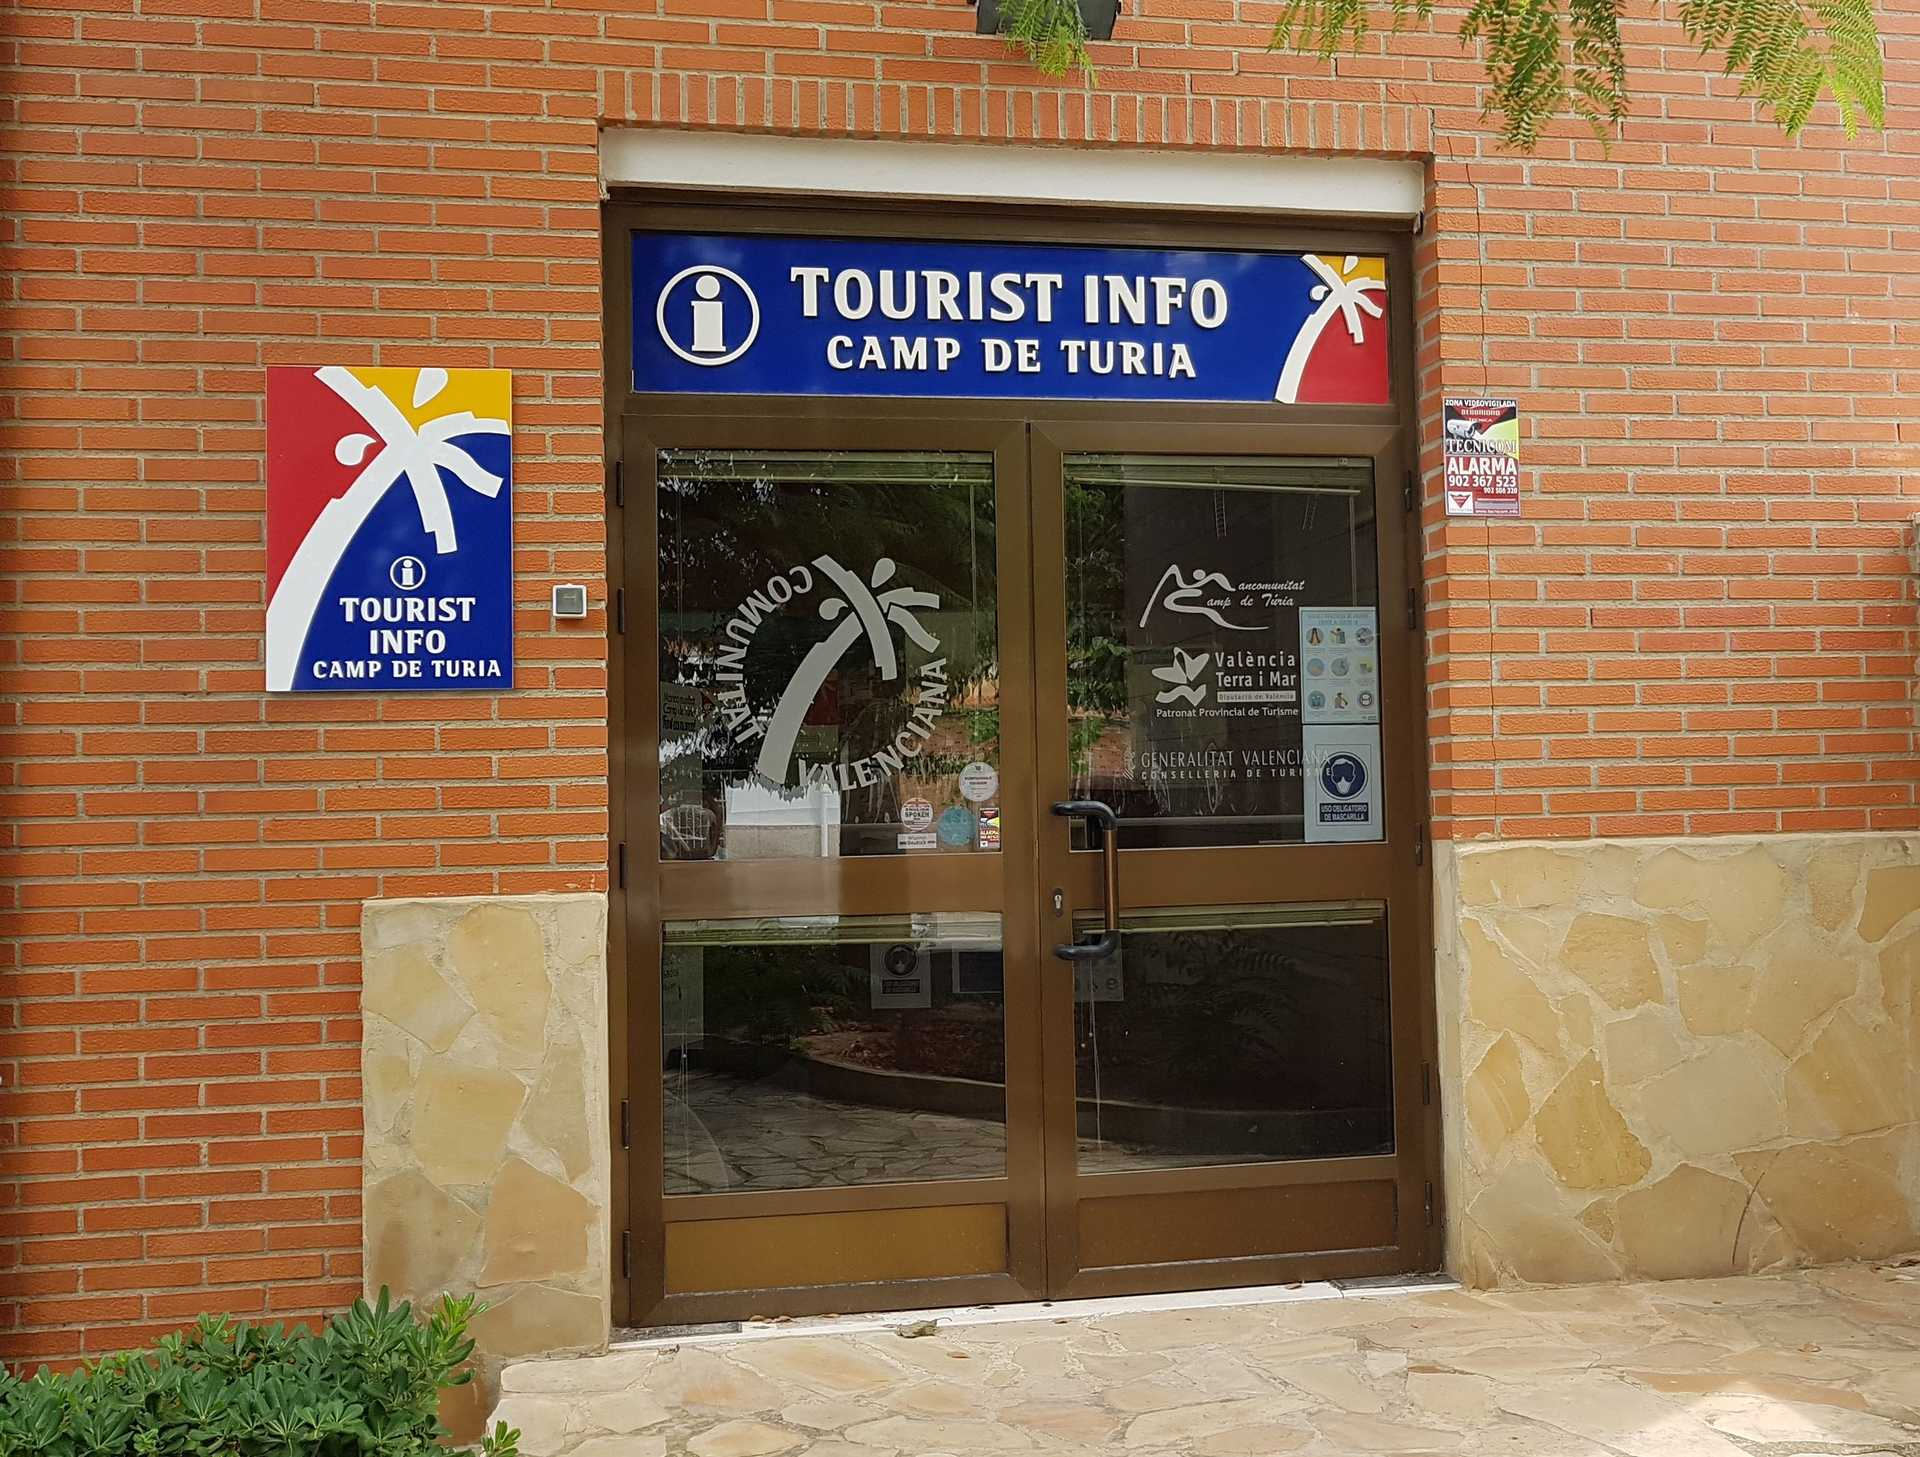 TOURIST INFO CAMP DE TÚRIA